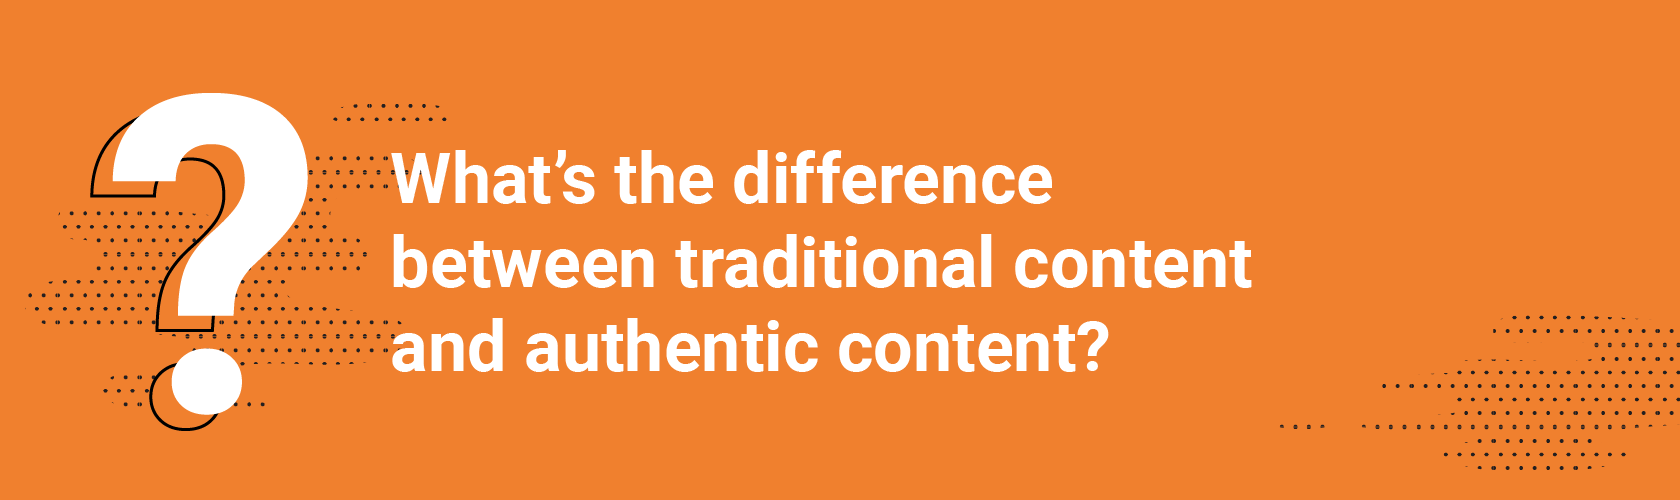 What's the difference between traditional content and authentic content?